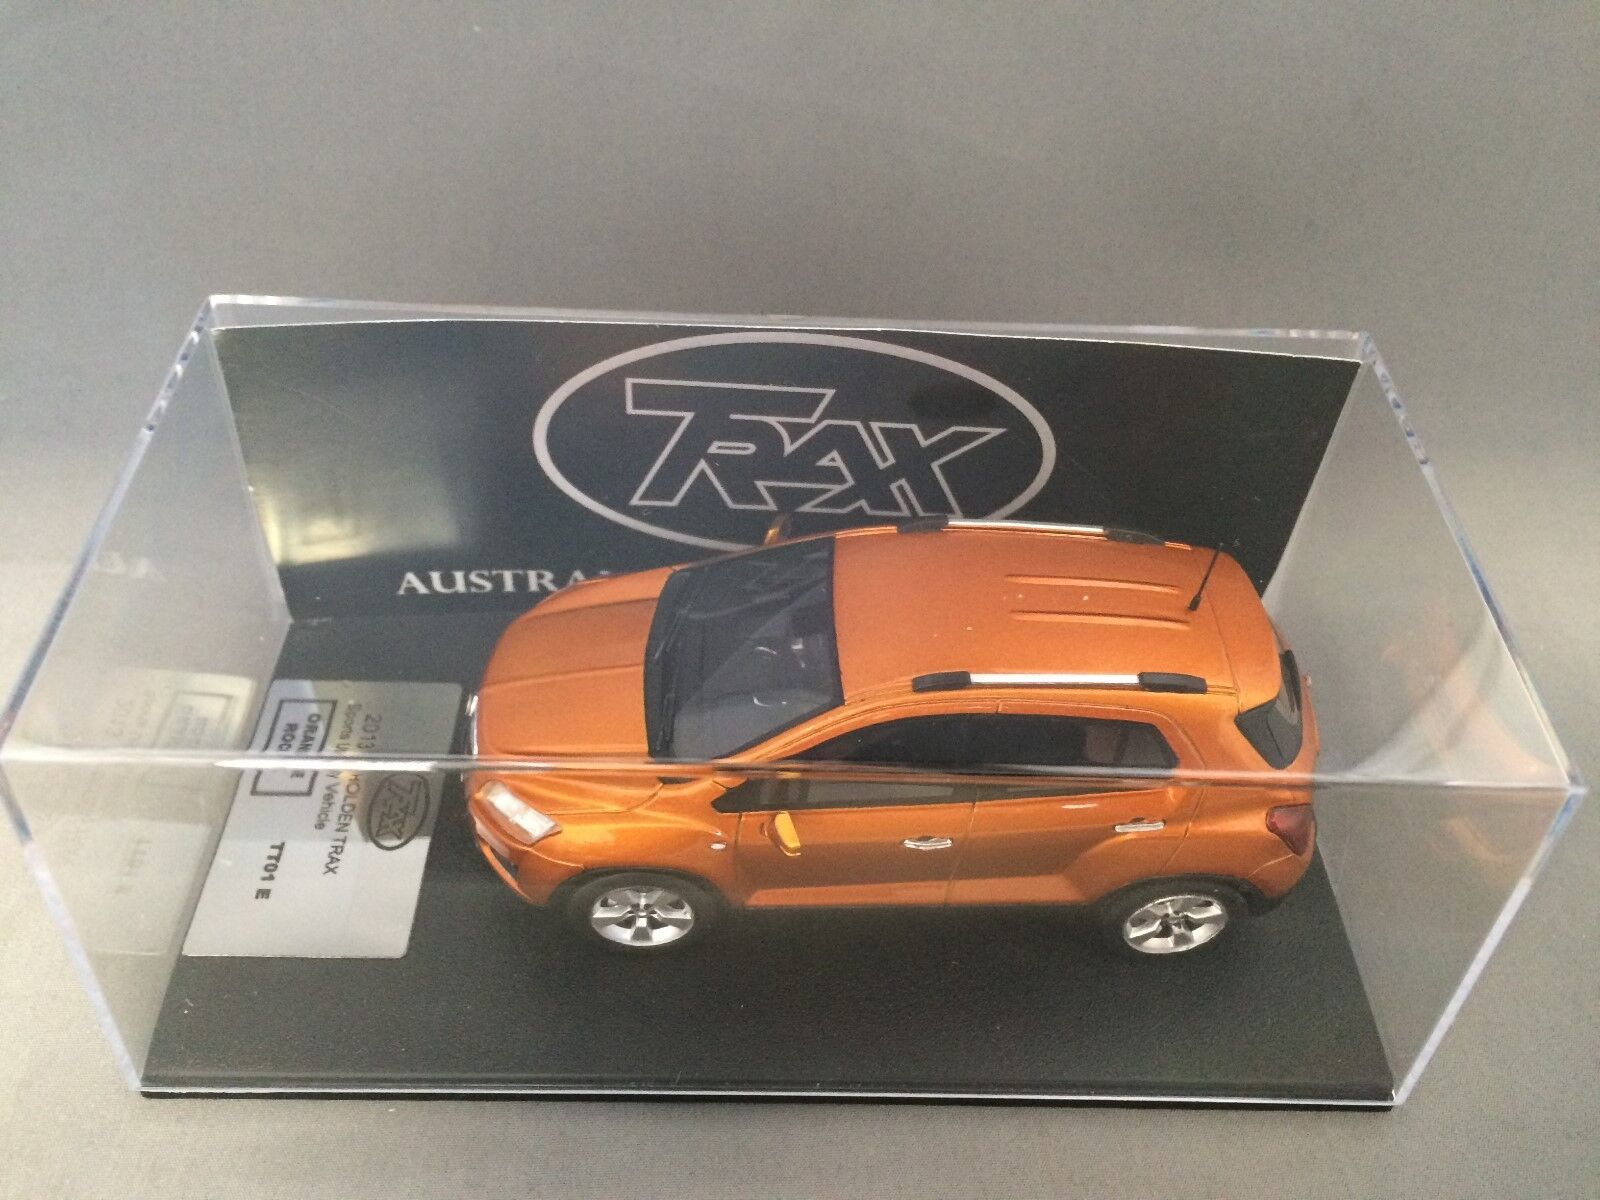 Trax TT01E 013 Holden Trax Sports Vehicle orange